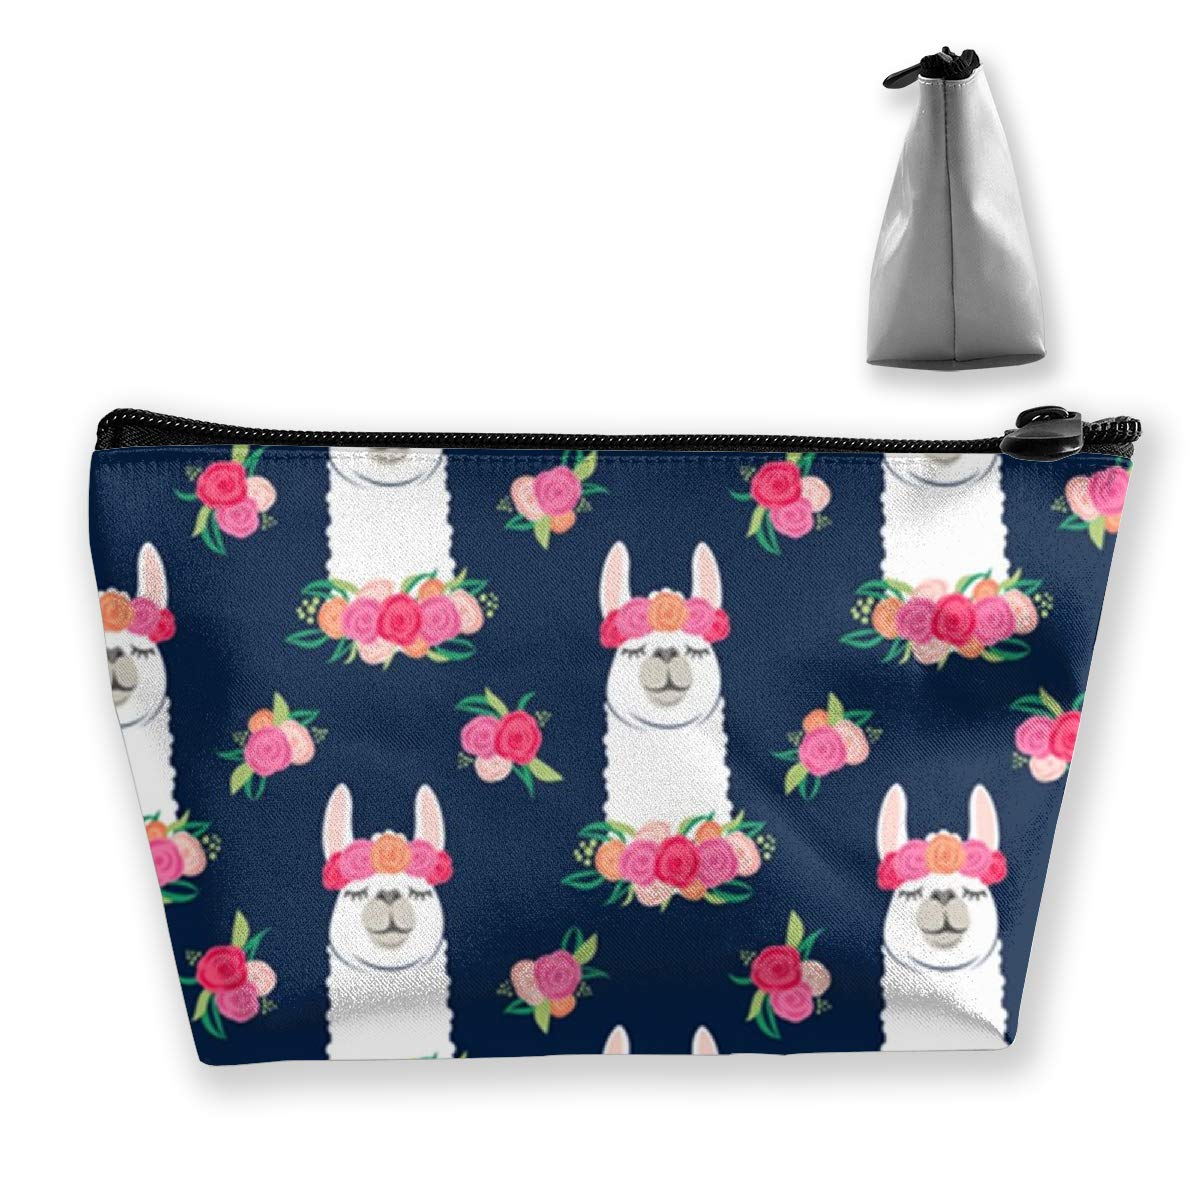 Portable Floral Llama Pattern Trapezoidal Storage Pouch Cosmetic Bag Makeup Bag Travel Pouches Toiletry Bag Cases With Zipper For Women And Girls